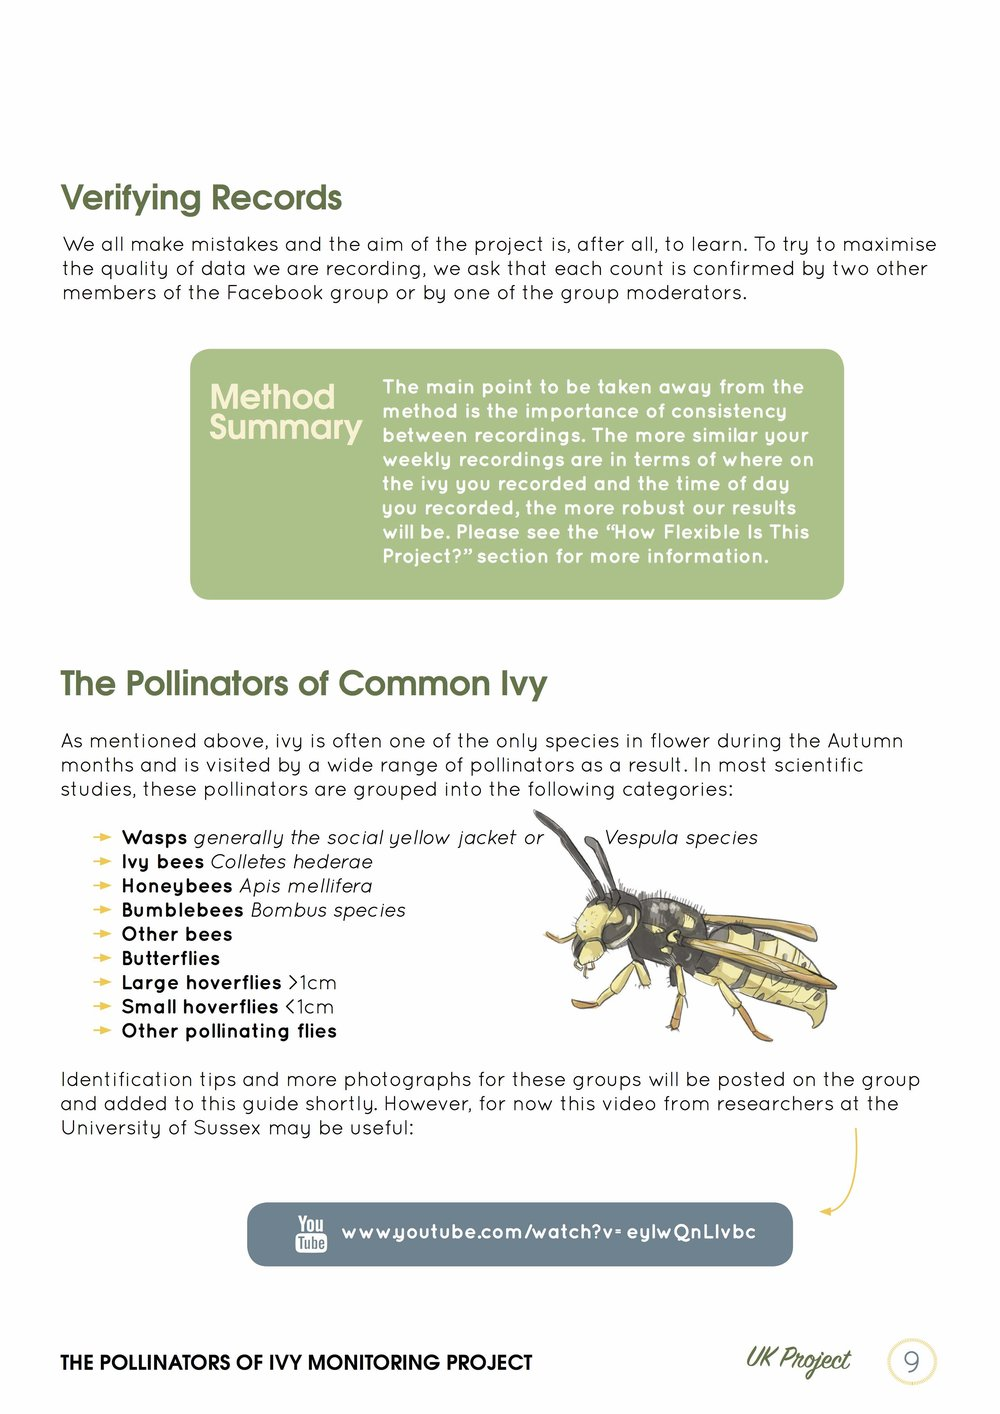 ThePollinatorsofIvyMonitoringProject_HowToGuide_April2017_DraftPages2.jpg